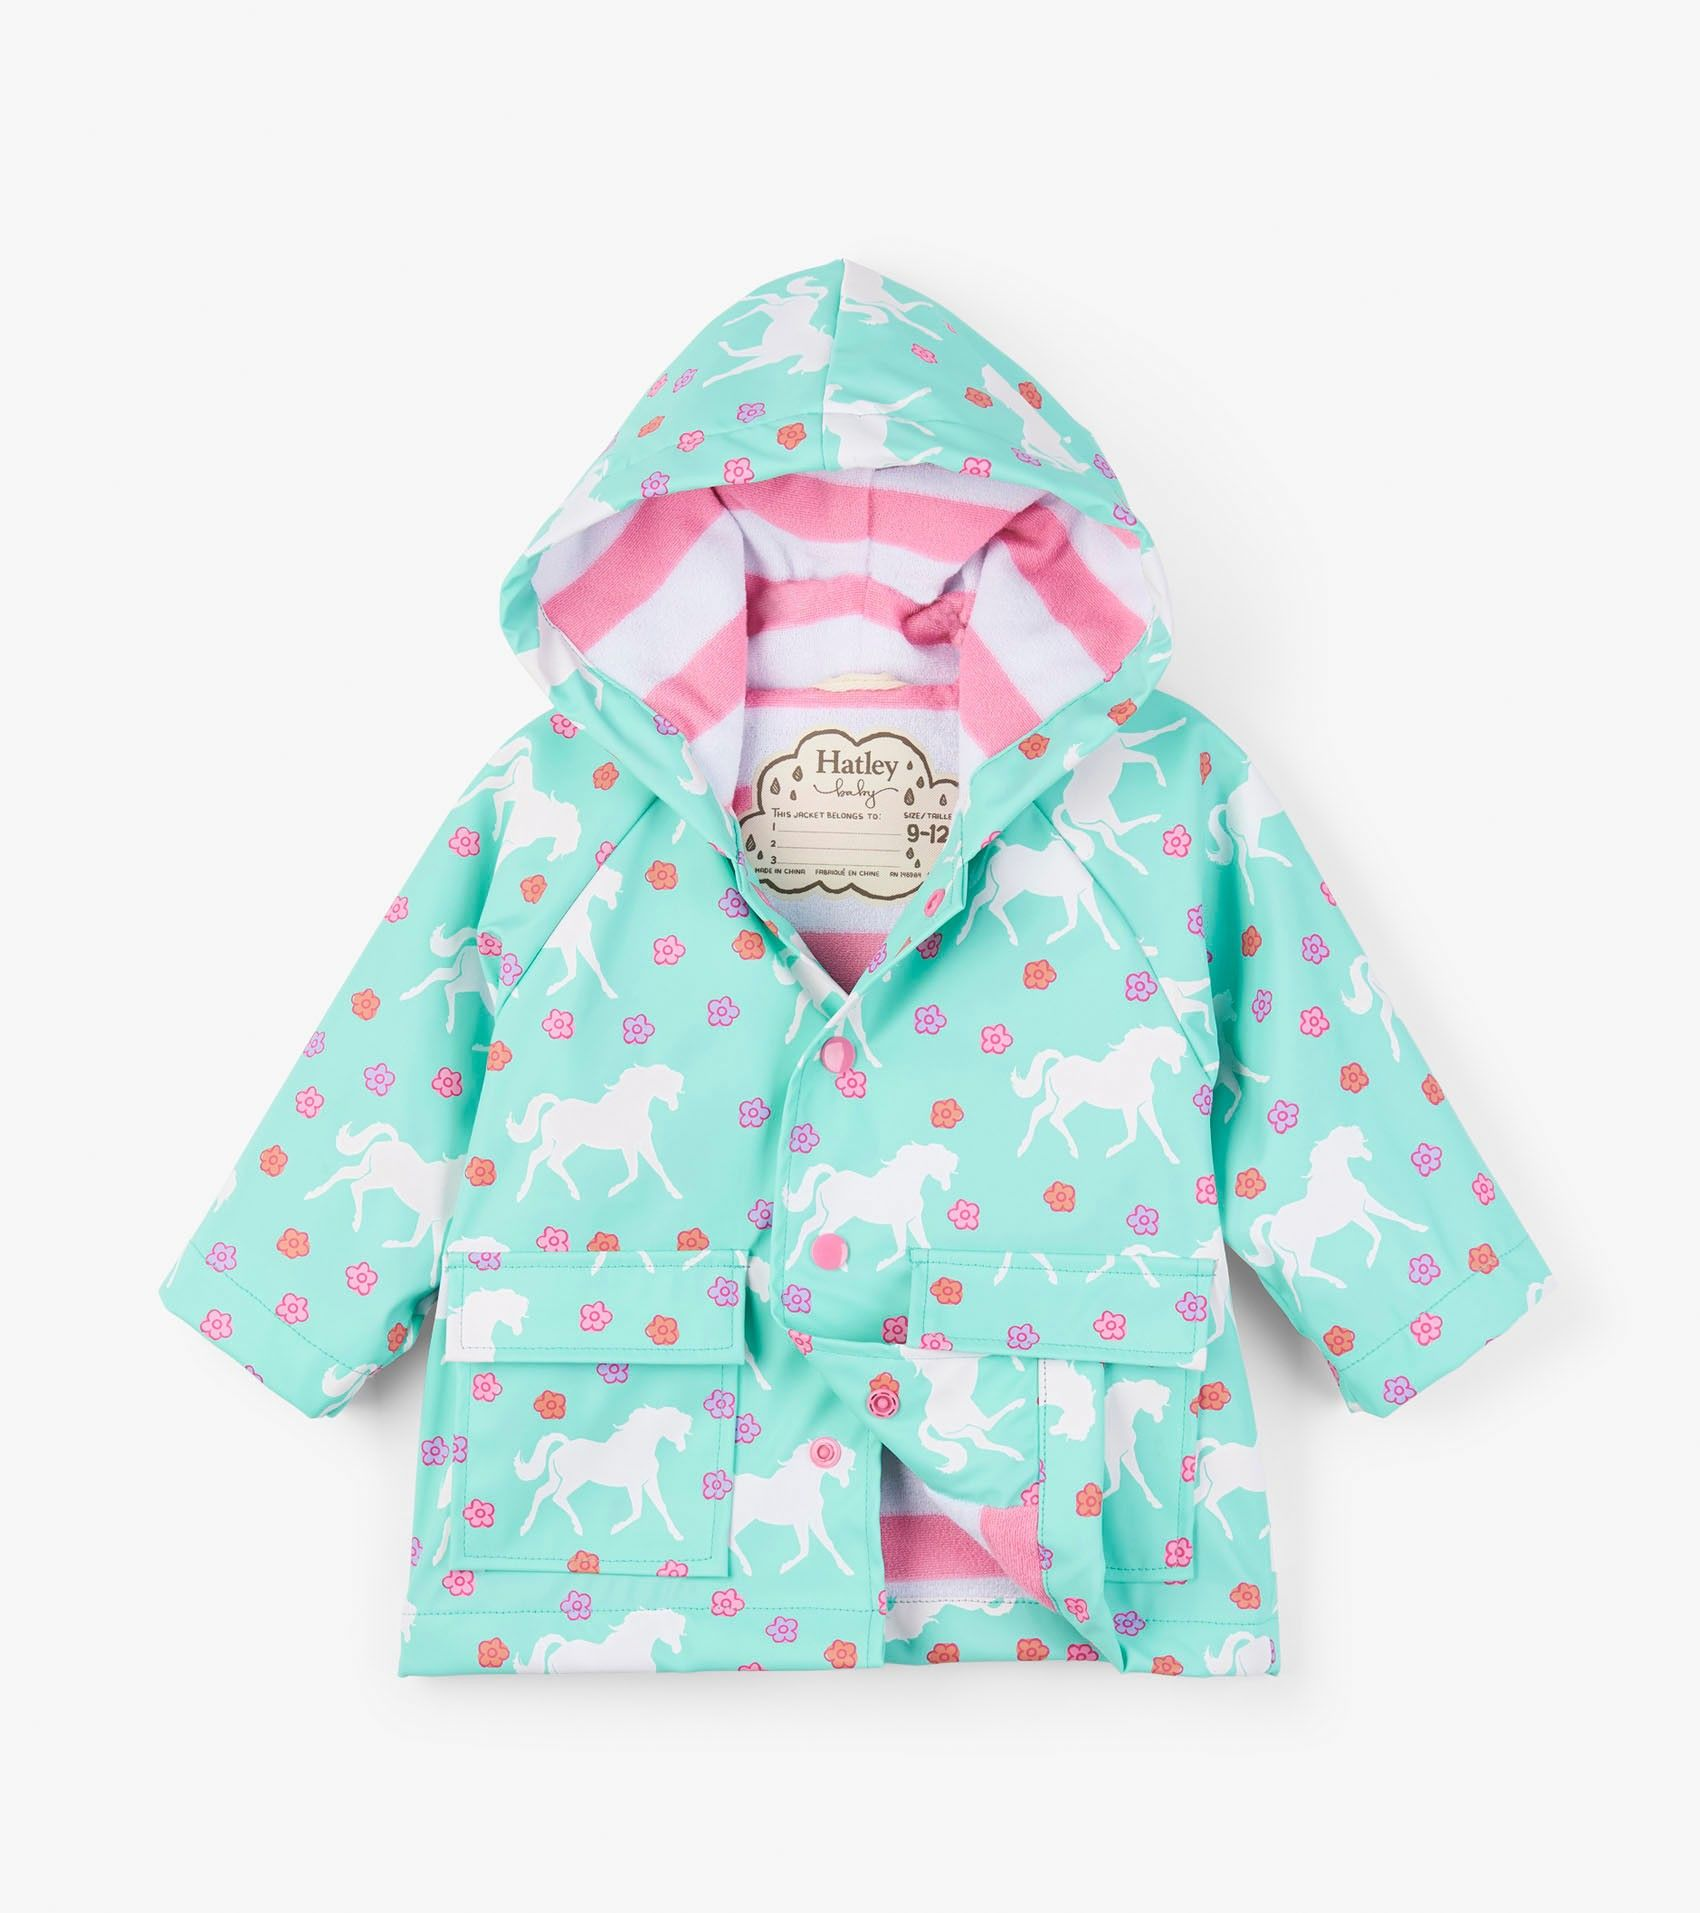 a5fcd37c8 Colour Changing Galloping Horses Baby Raincoat - Outerwear - Categories -  Baby Girls | Hatley US